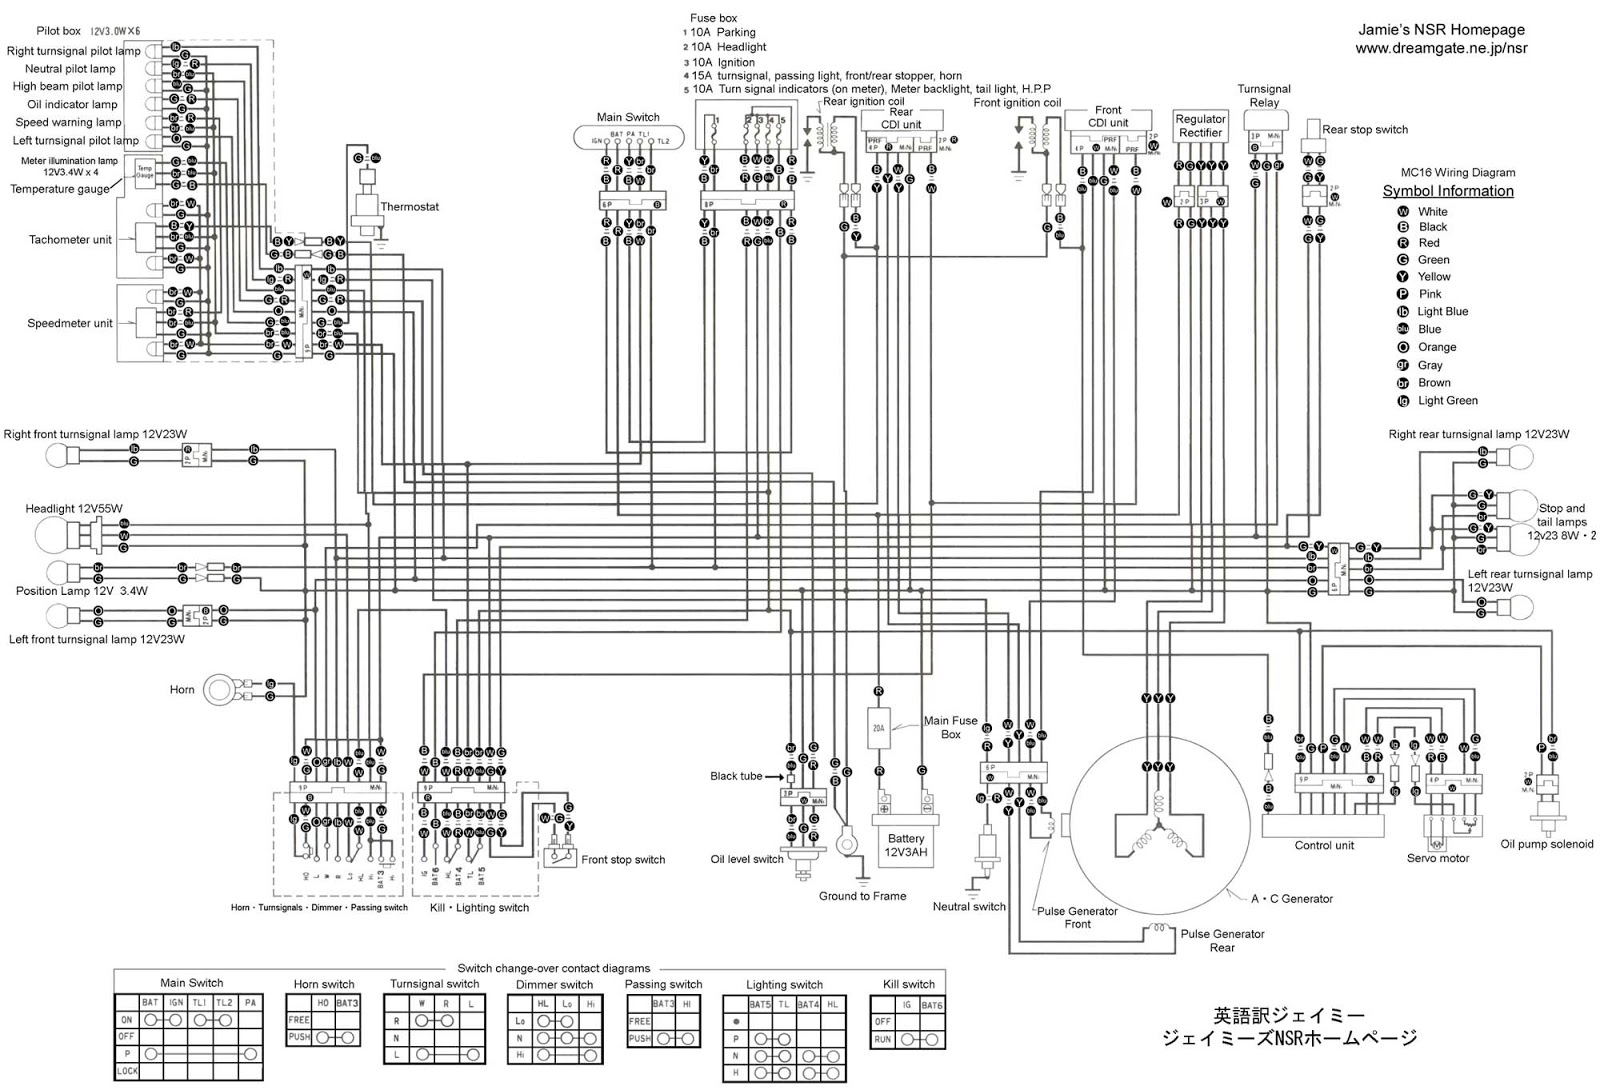 hight resolution of nsr salatiga wiring diagram honda nsr series honda sonic 150 wiring diagram honda 150 wiring diagram